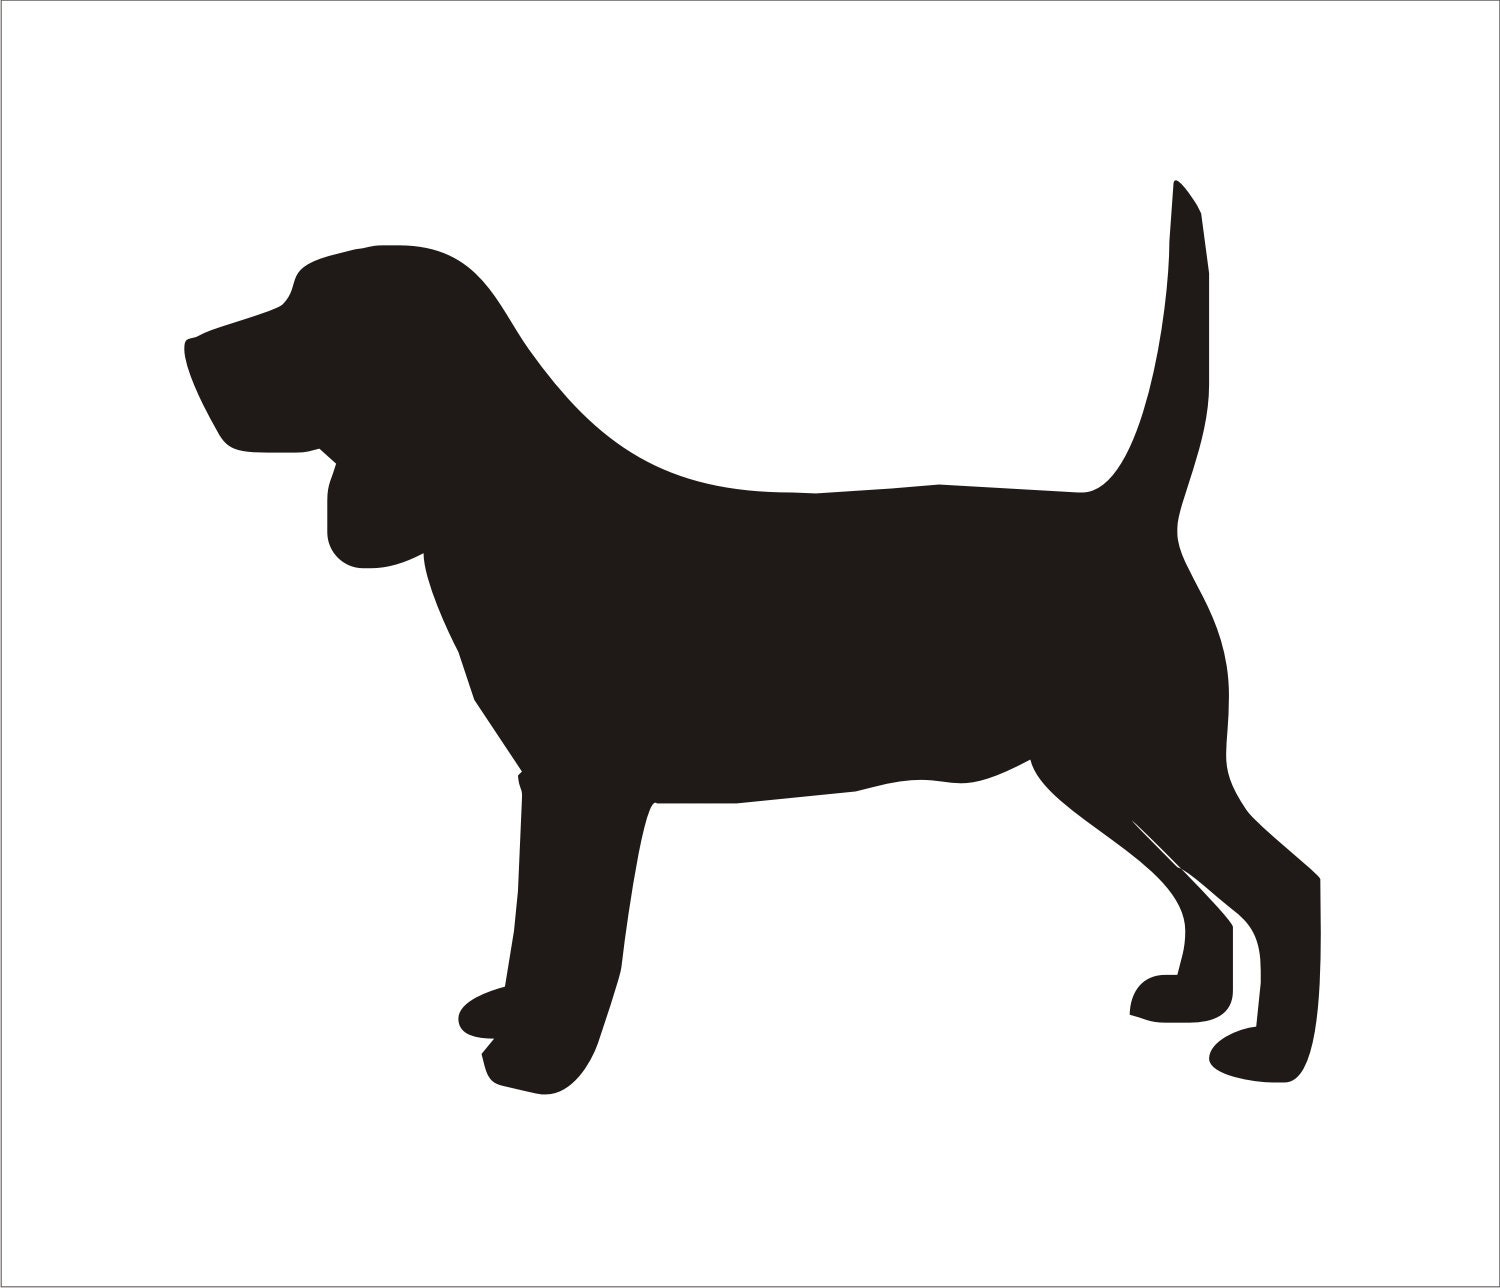 Beagle dog reusable stencils sizes available pillow